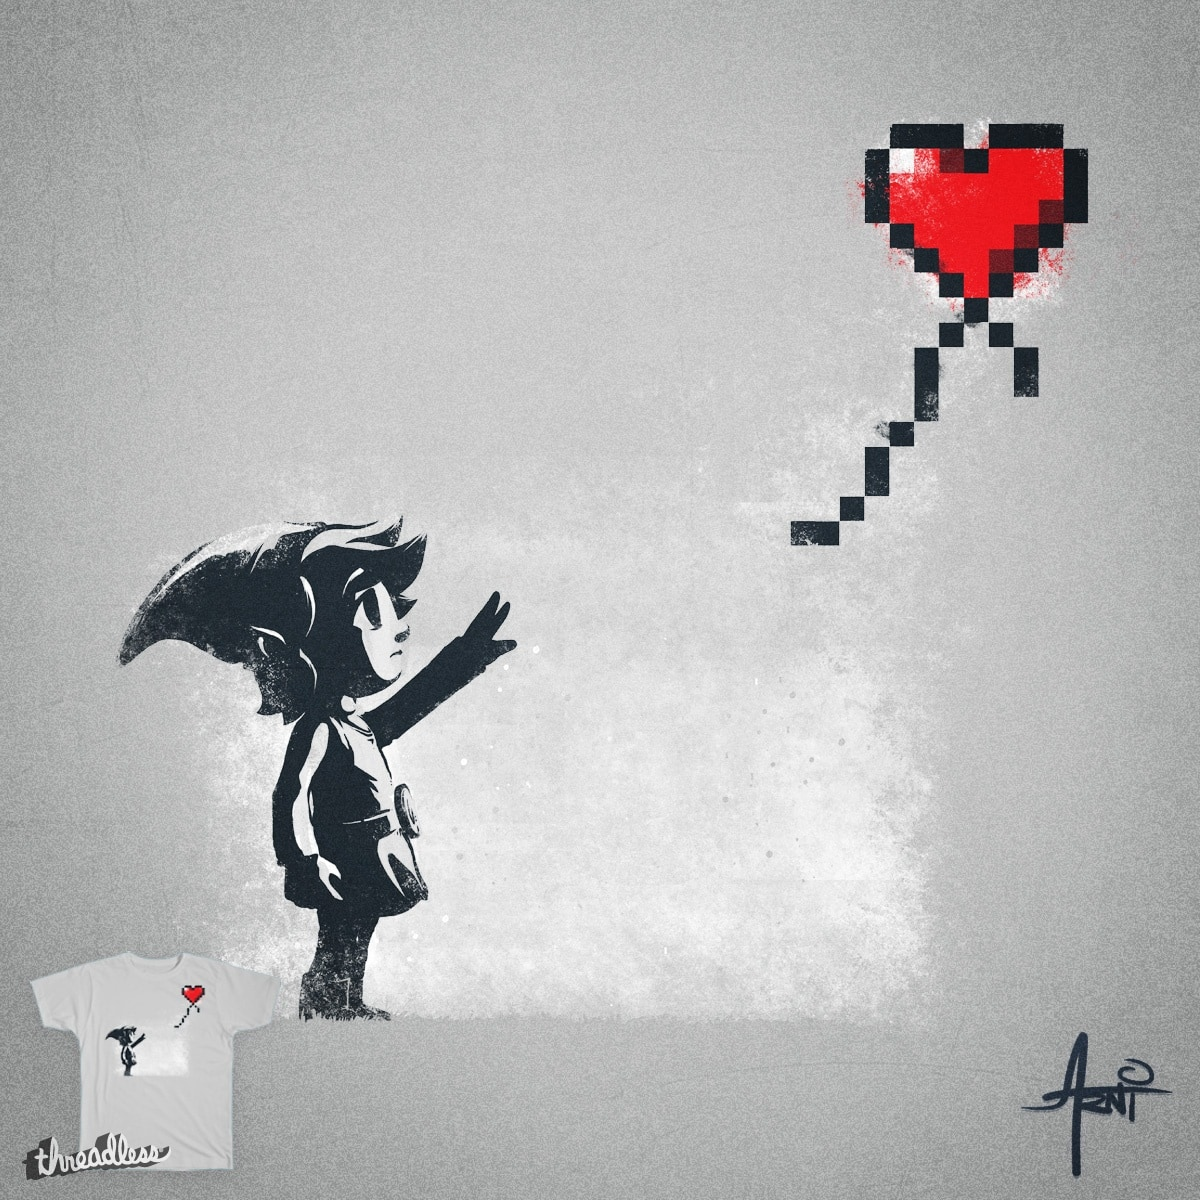 Linksy by albertoarni on Threadless